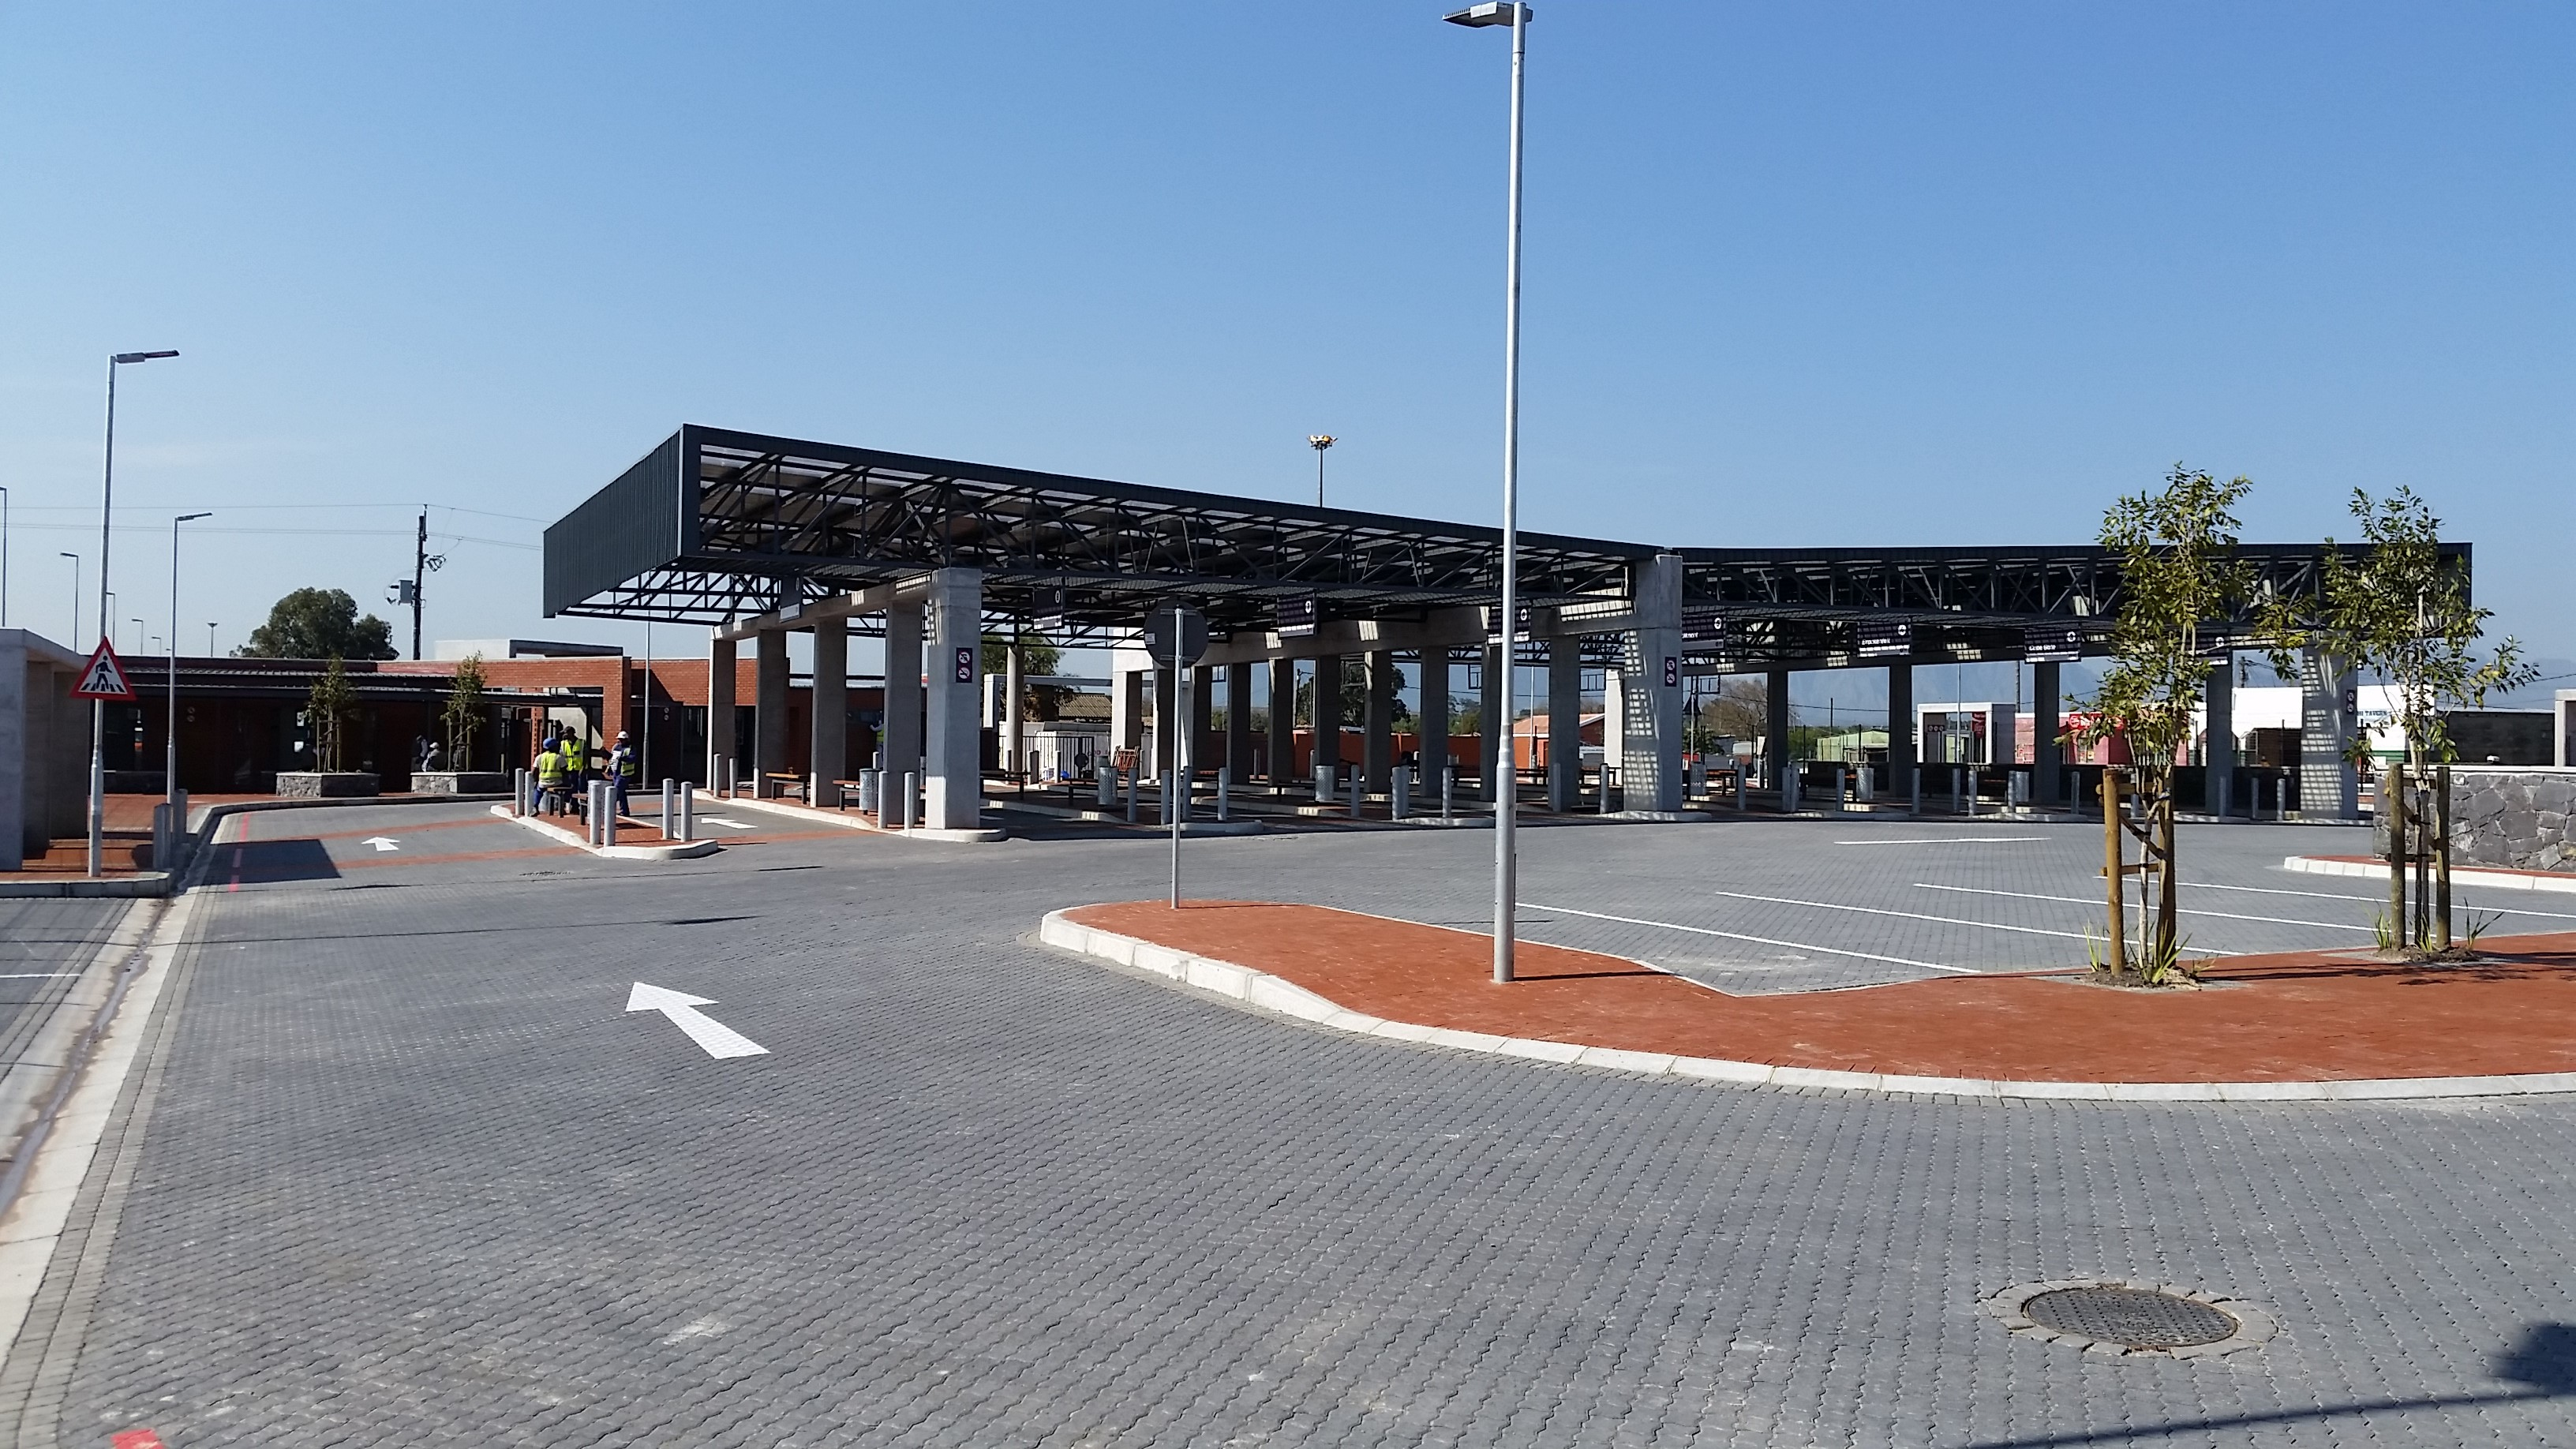 Kraaifontein Taxi Rank 20 Kw System Grid Tied With